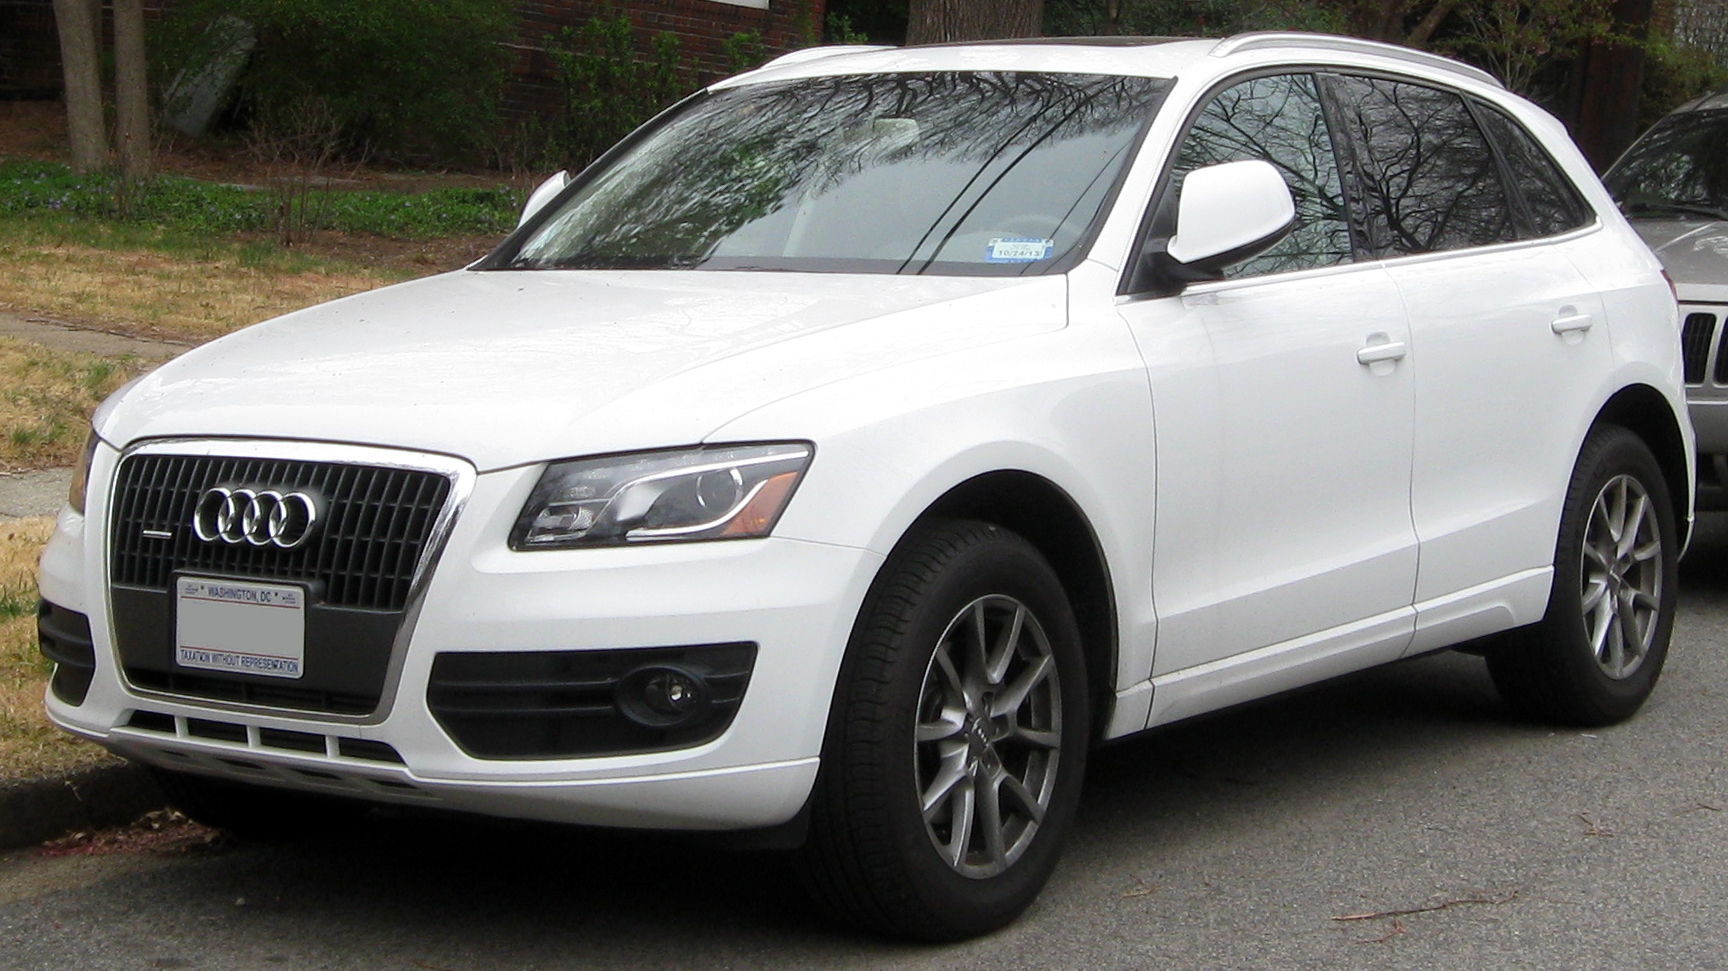 File:Audi Q5 -- 03-16-2012.JPG - Wikimedia Commons